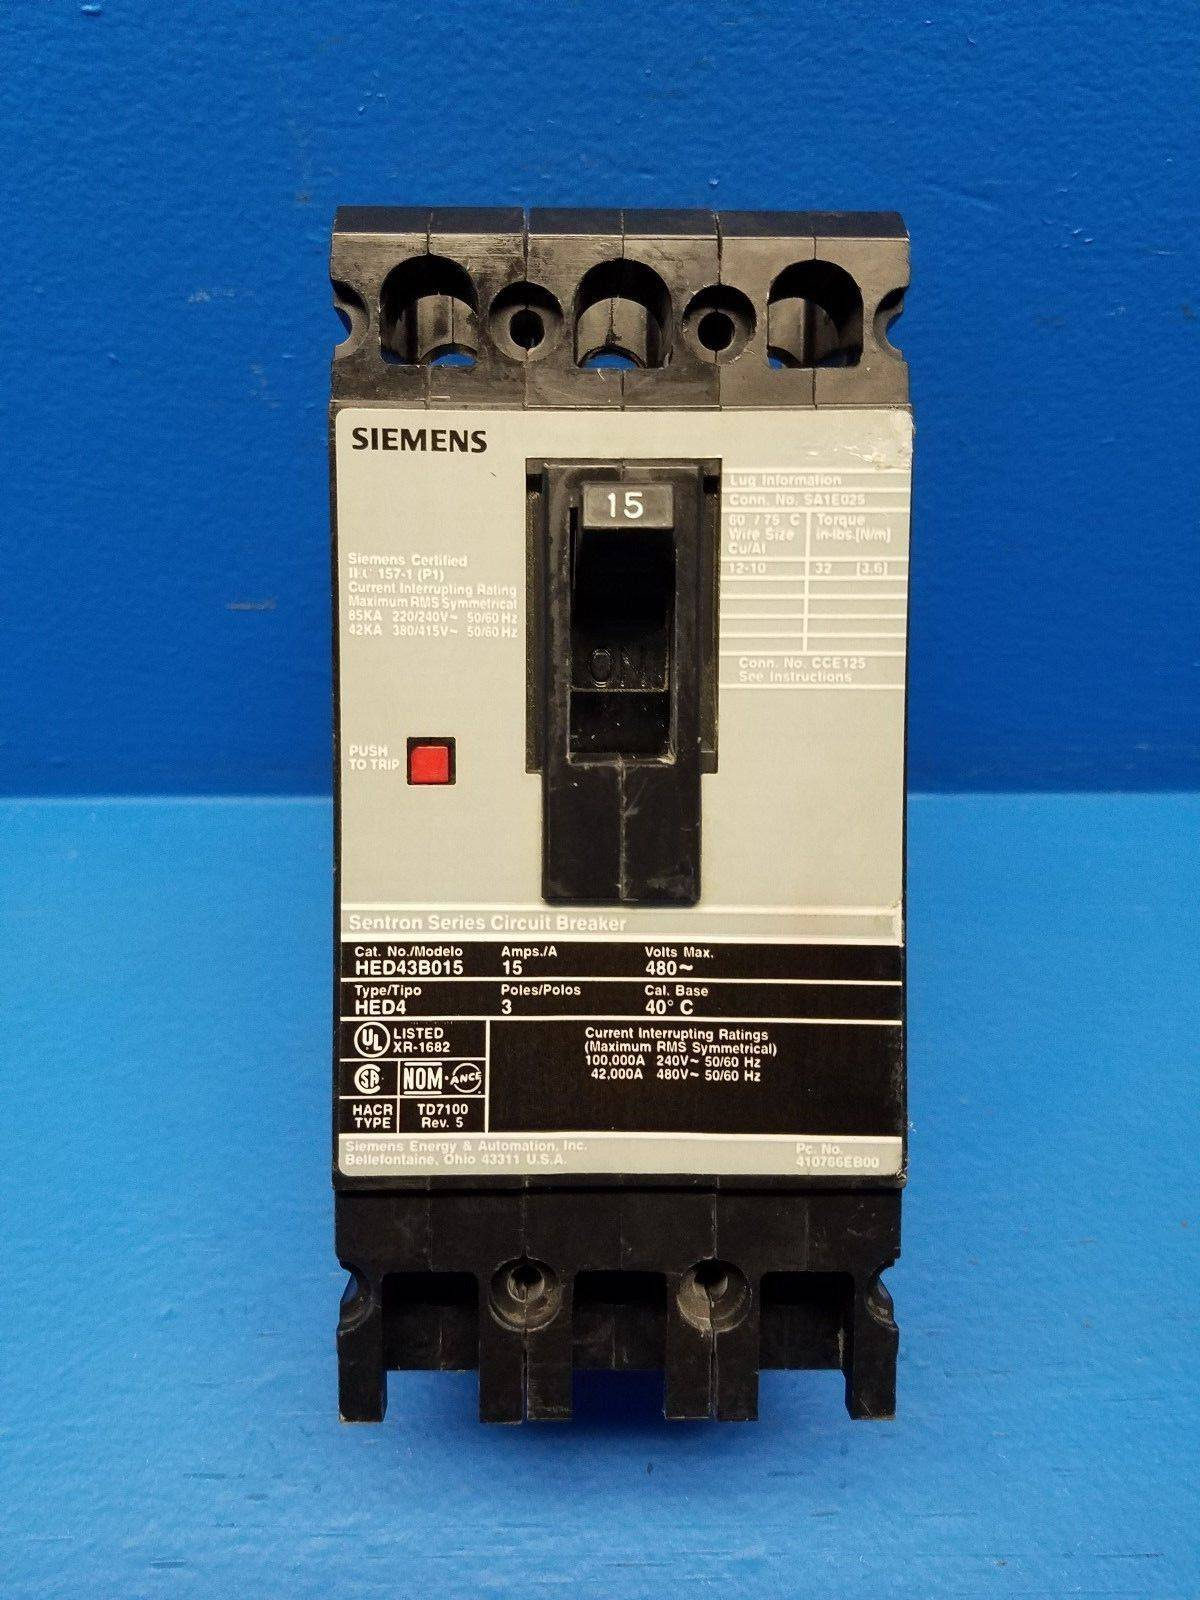 Siemens i t e hed43b015 15a sentron circuit breaker hed4 480v ite 3 siemens i t e hed43b015 15a sentron circuit breaker hed4 480v ite 3 pole 15 amp mm0803 5 river city industrial keyboard keysfo Gallery